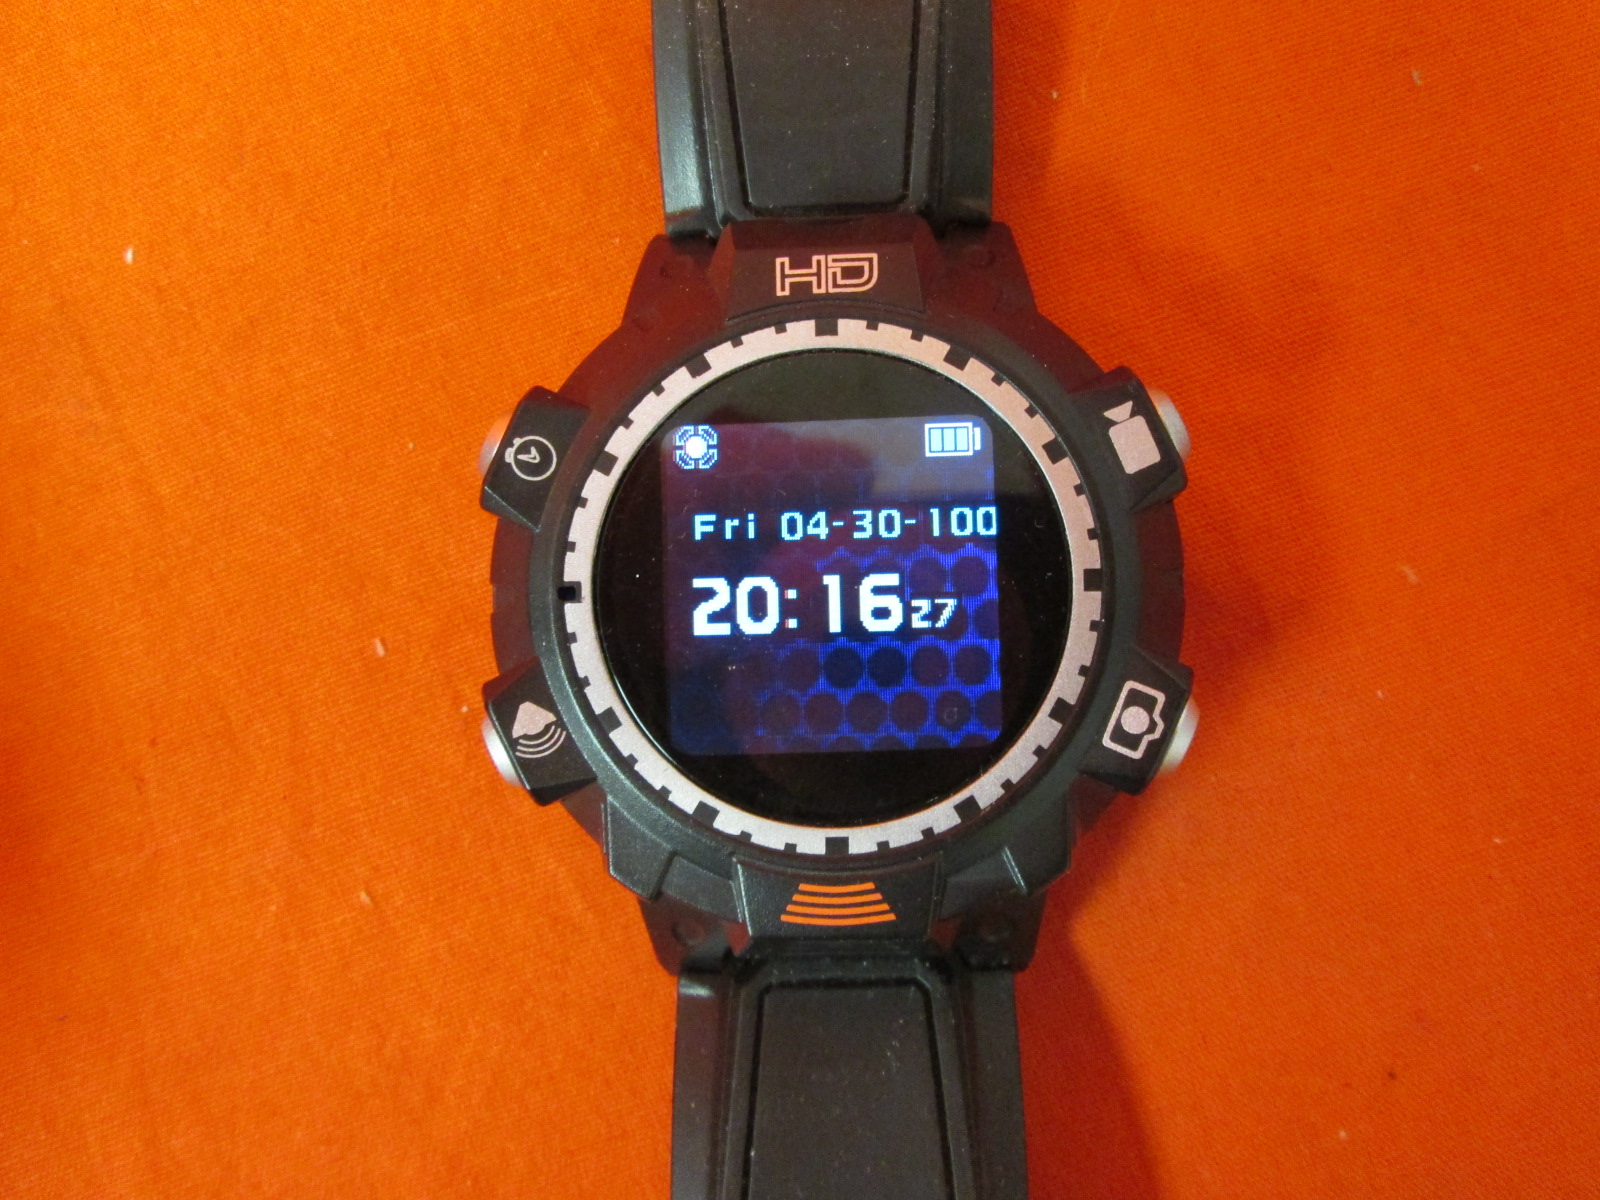 2GB HD Jakks Pacific Video Watch Black Edition Spy Surveillance